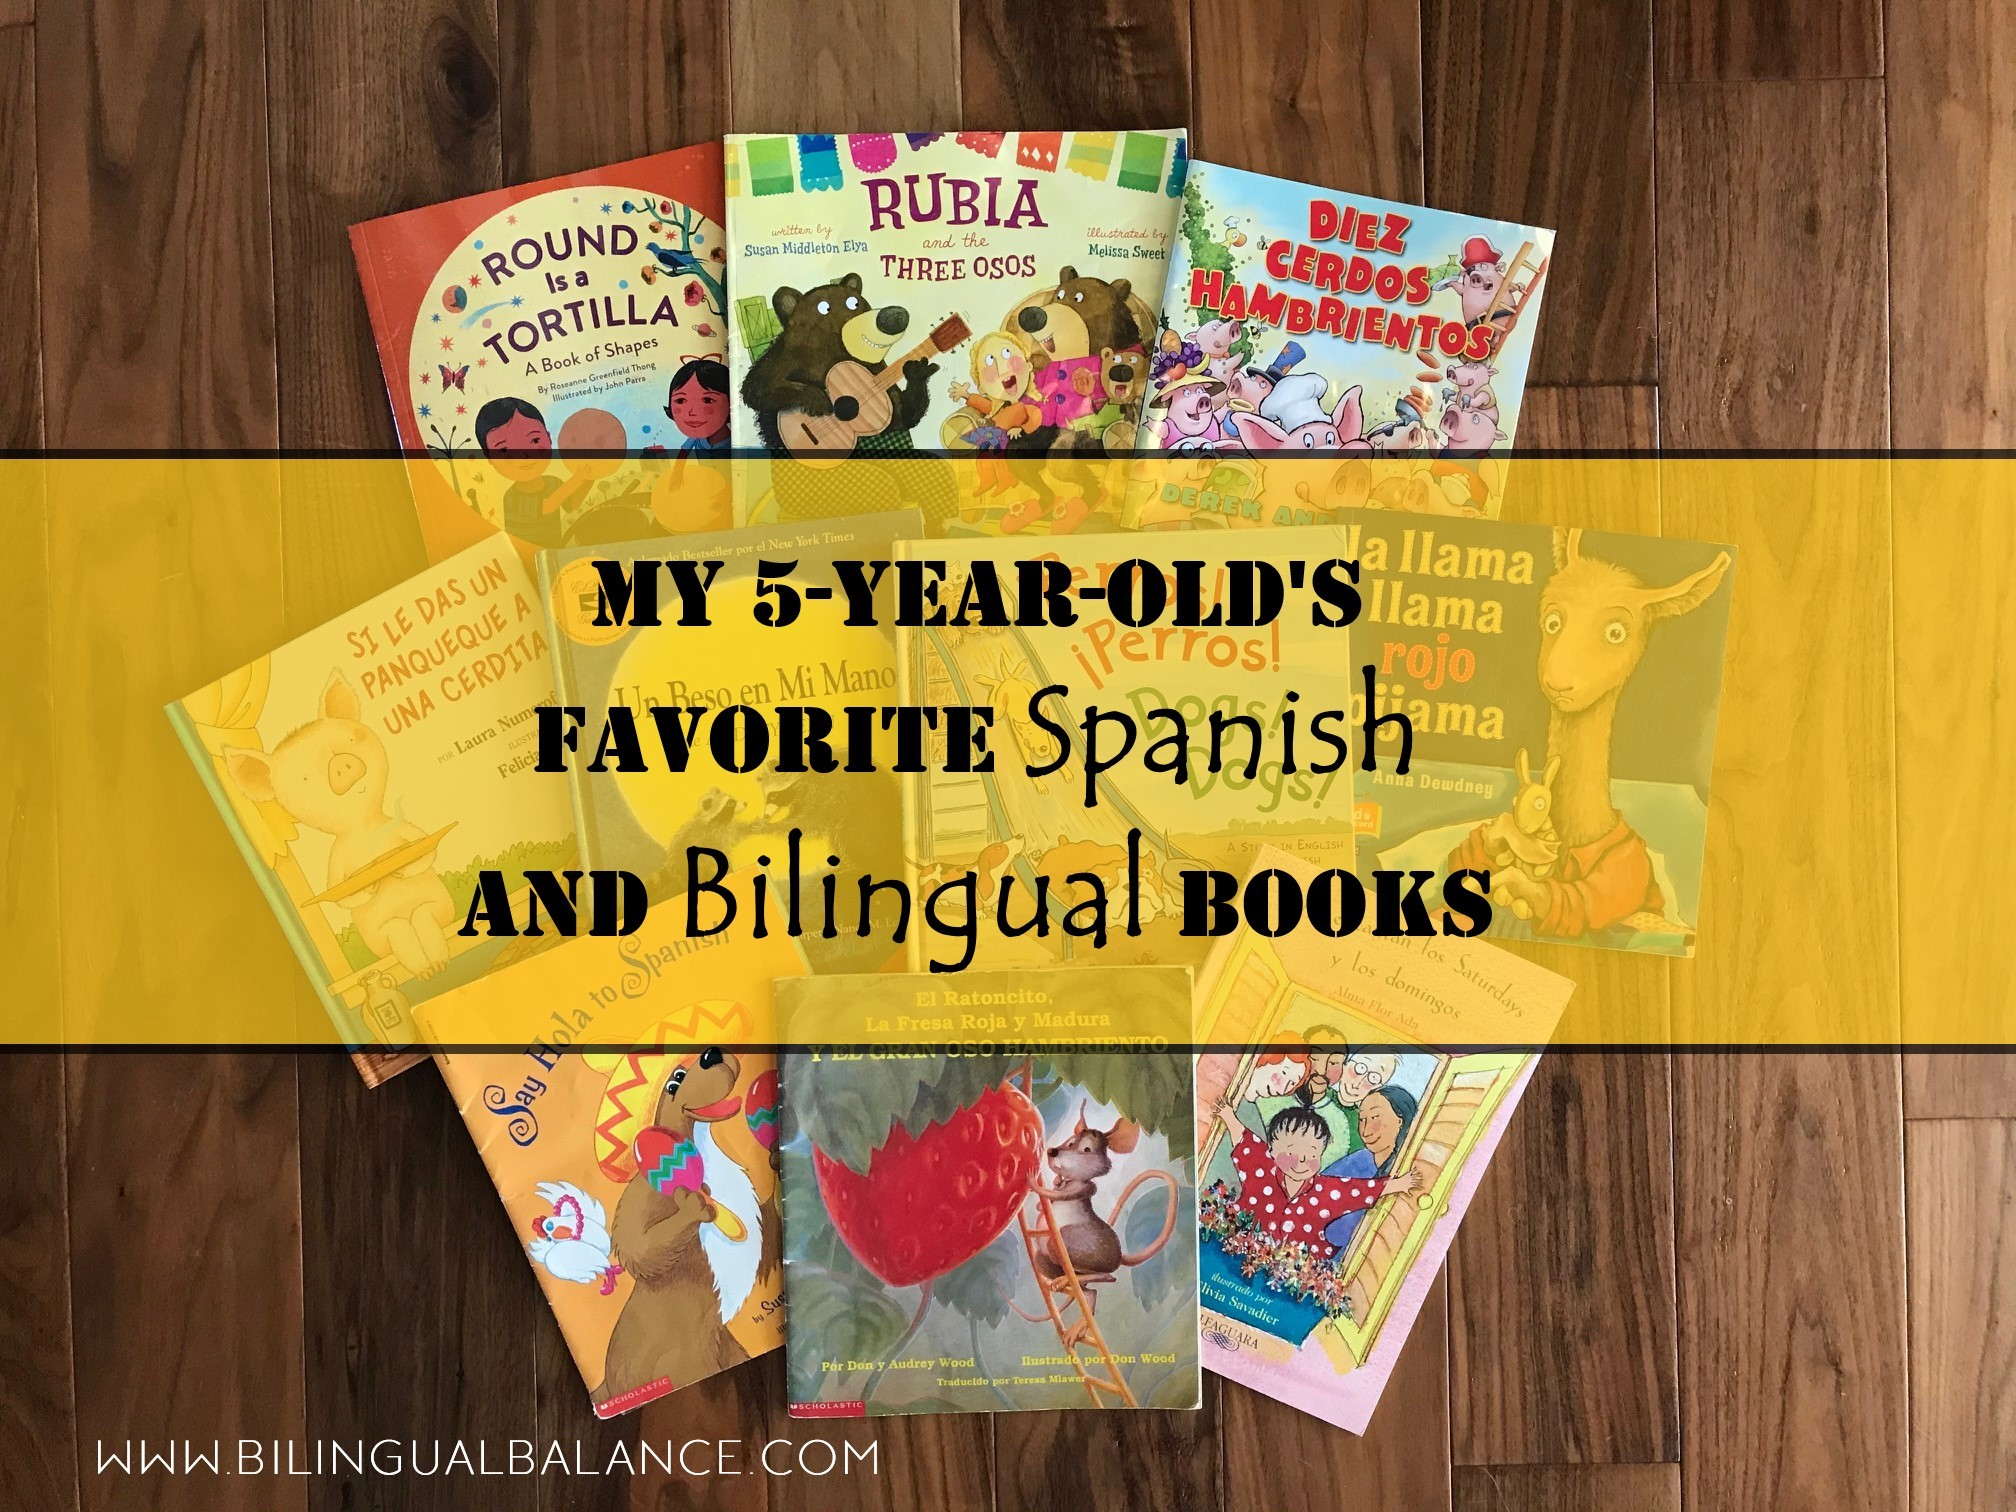 My 5-Year-Old's Favorite Spanish and Bilingual Books